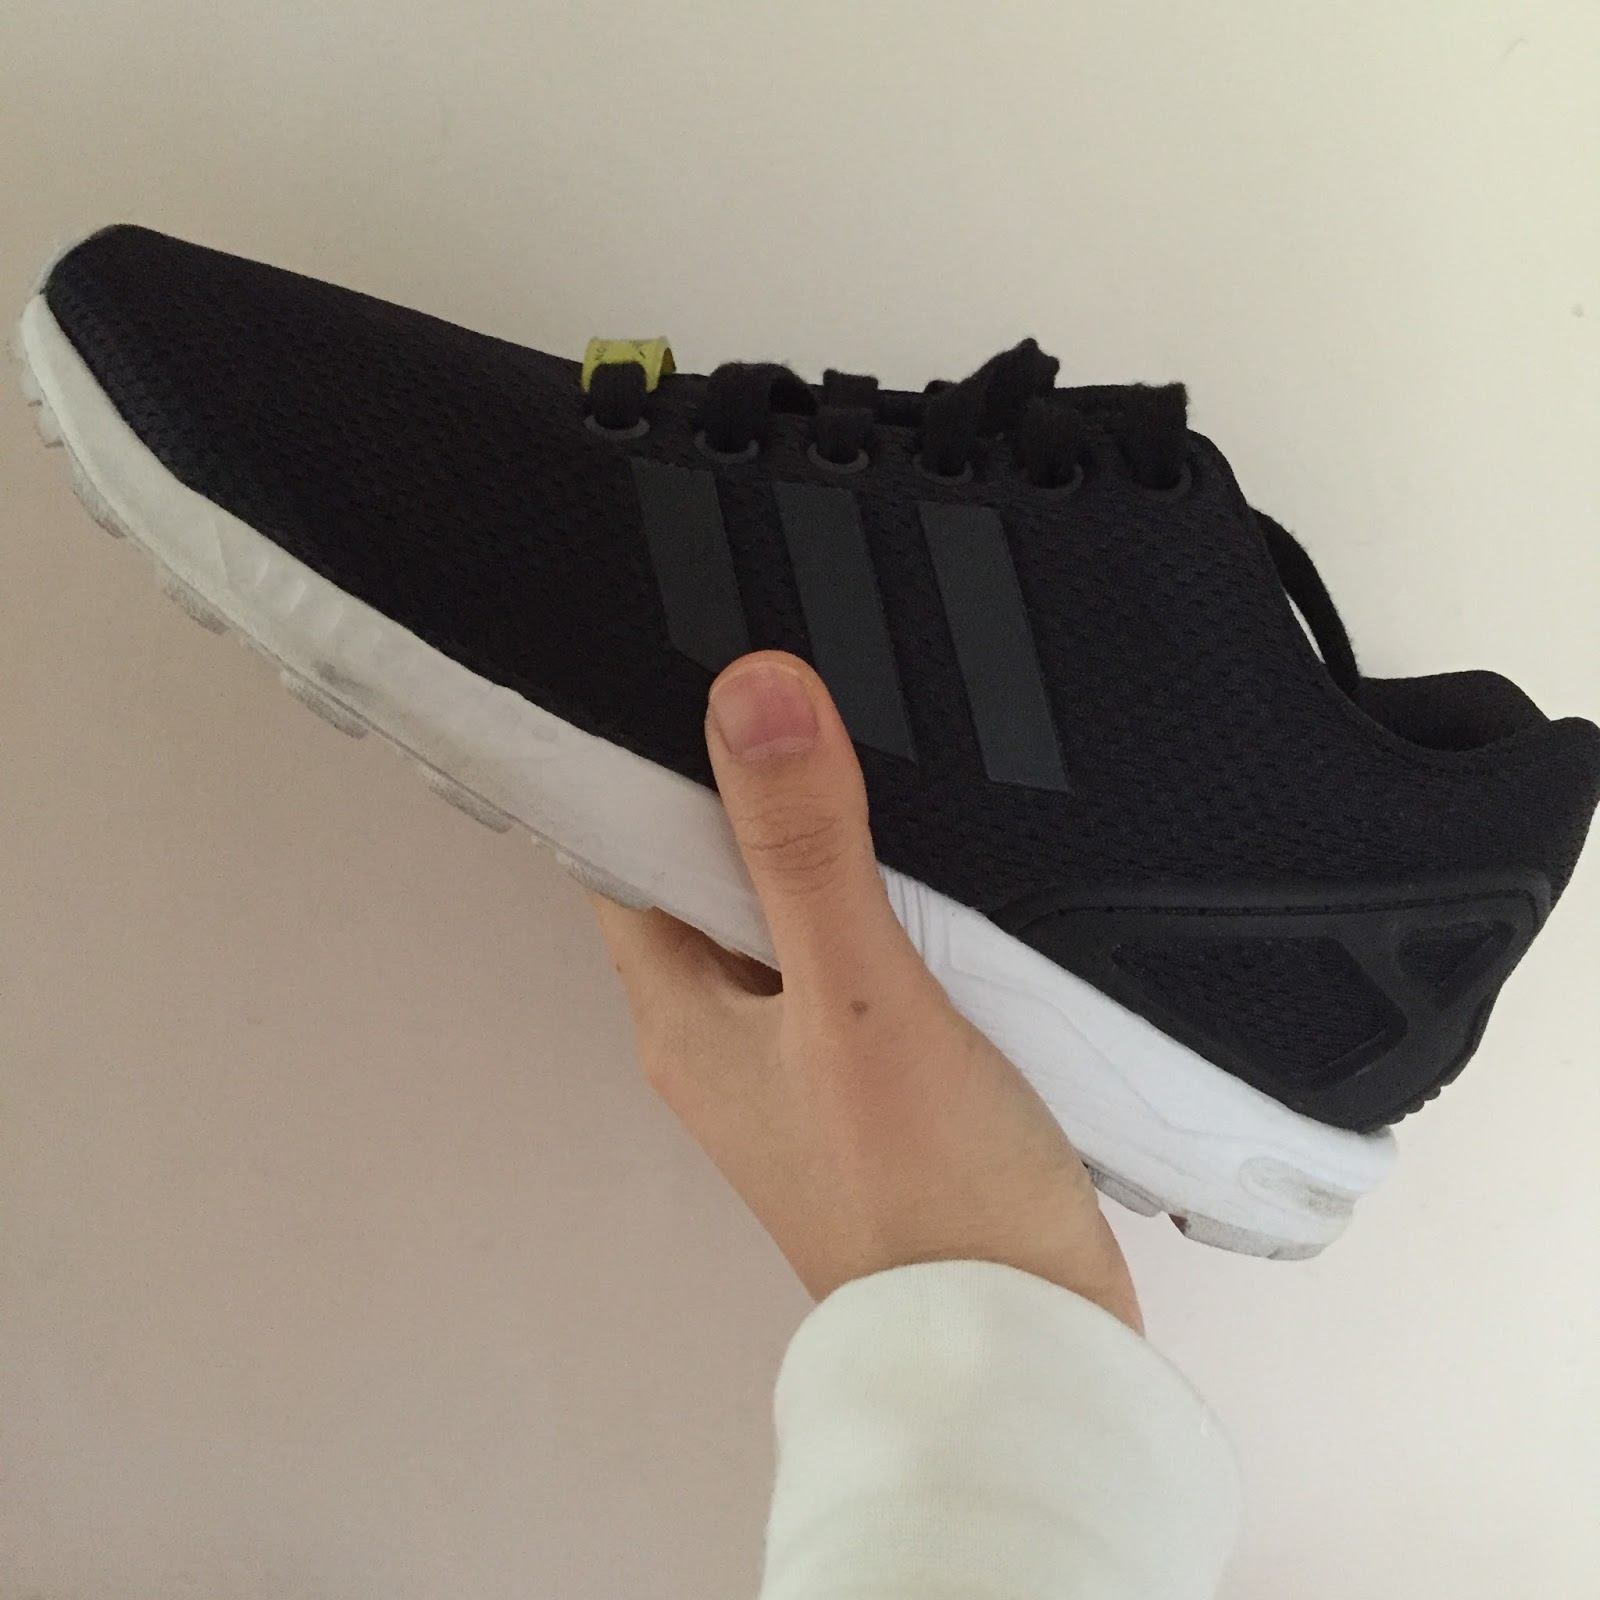 34a4d8ed0b66 My Shopping Escapades  Review  Adidas ZX Flux vs Nike Roshes